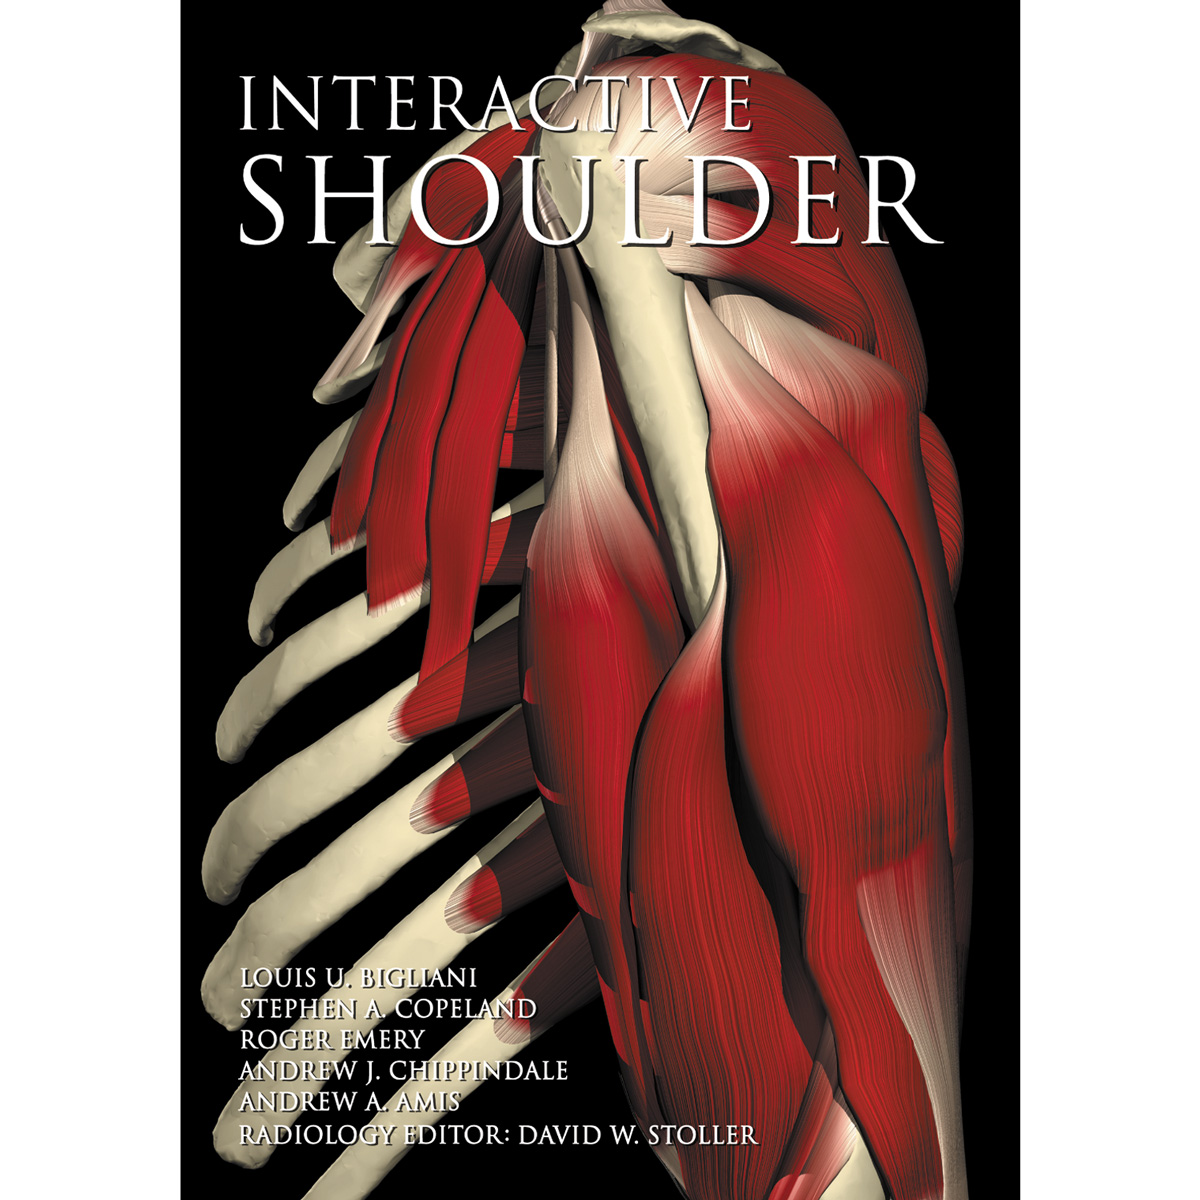 Primal Pictures Interactive Shoulder English 1005848 W46617